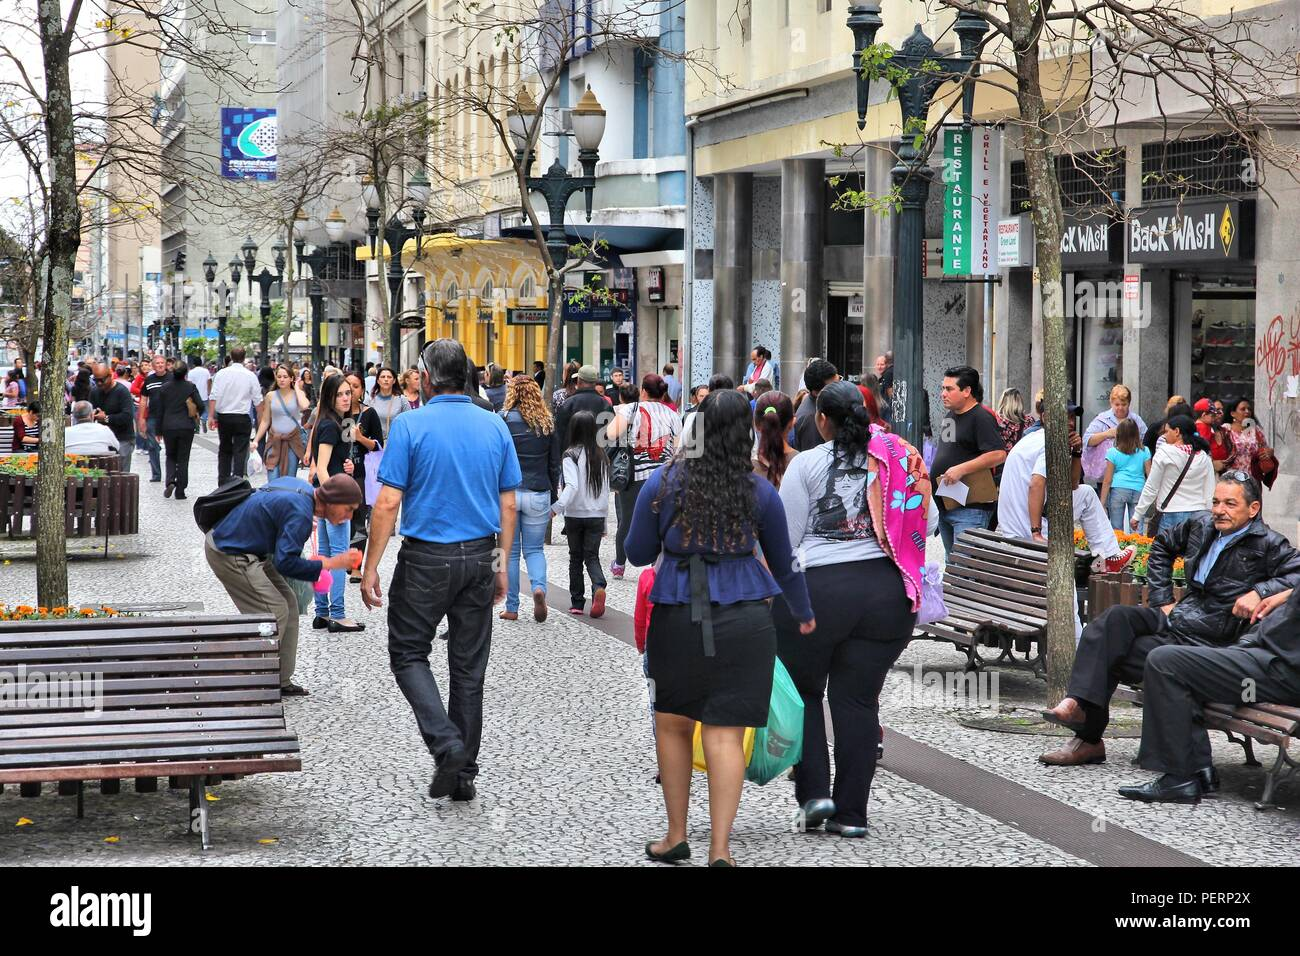 CURITIBA, BRAZIL - OCTOBER 7, 2014: People shop in pedestrian zone of Curitiba, Brazil. Curitiba is the 8th most populous city of Brazil with 1.76 mil - Stock Image